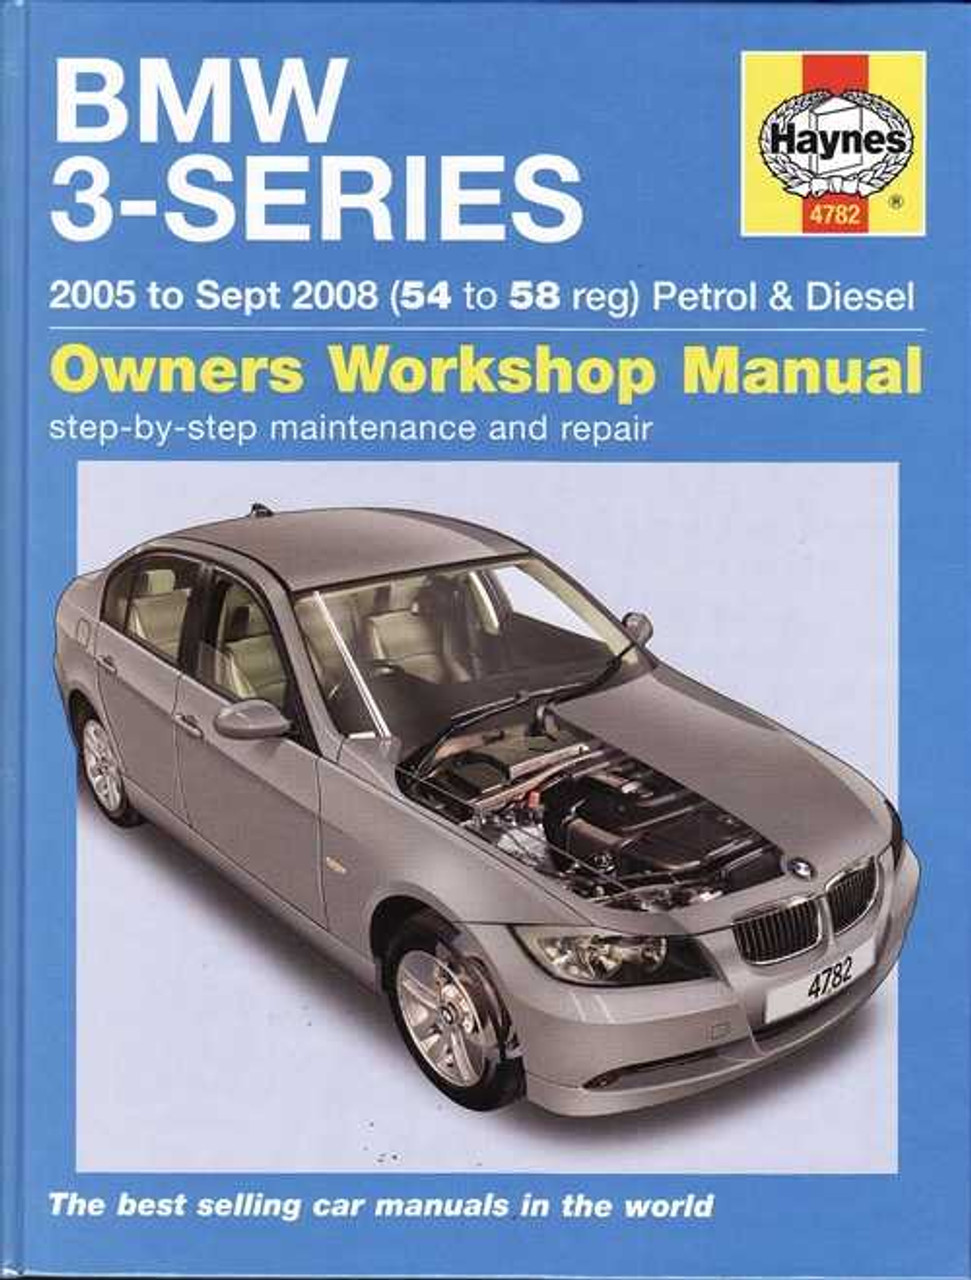 bmw 3 series e90 e91 petrol and diesel 2005 2008 workshop manual rh automotobookshop com au bmw e90 320d user manual bmw e90 320d owners manual pdf